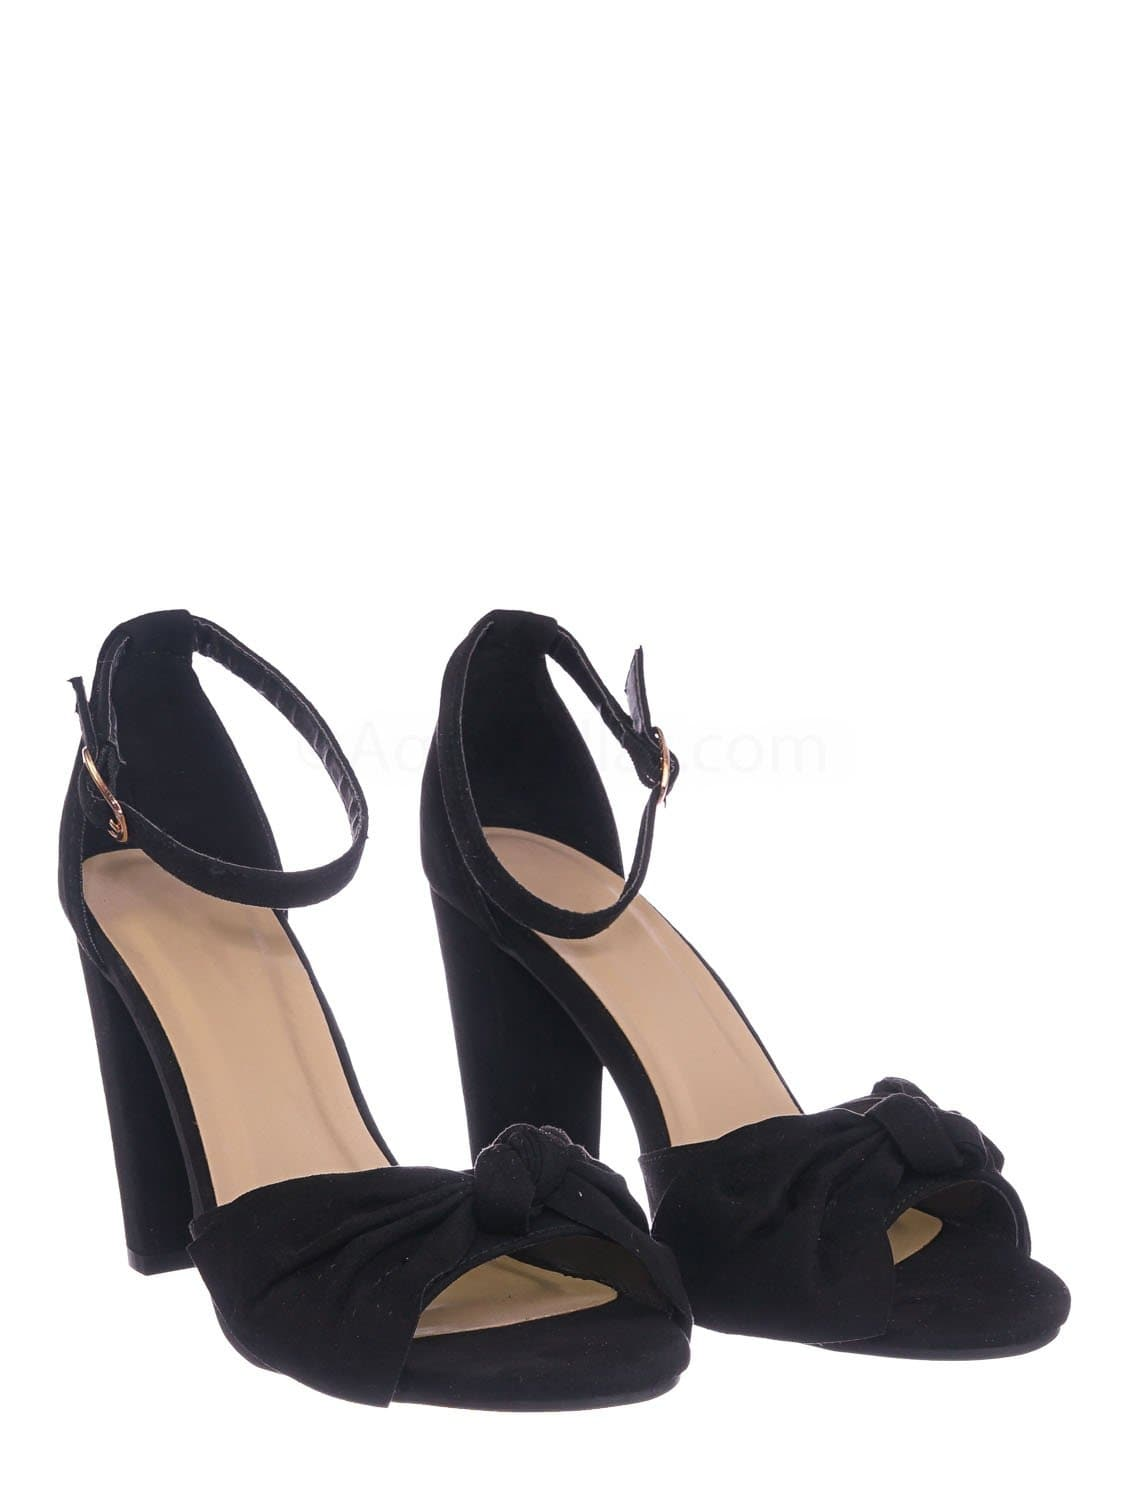 Mania18 BlkFS Chunky Block Heel Dress Sandal - Women Bow Adjustable Ankle Strap Shoes